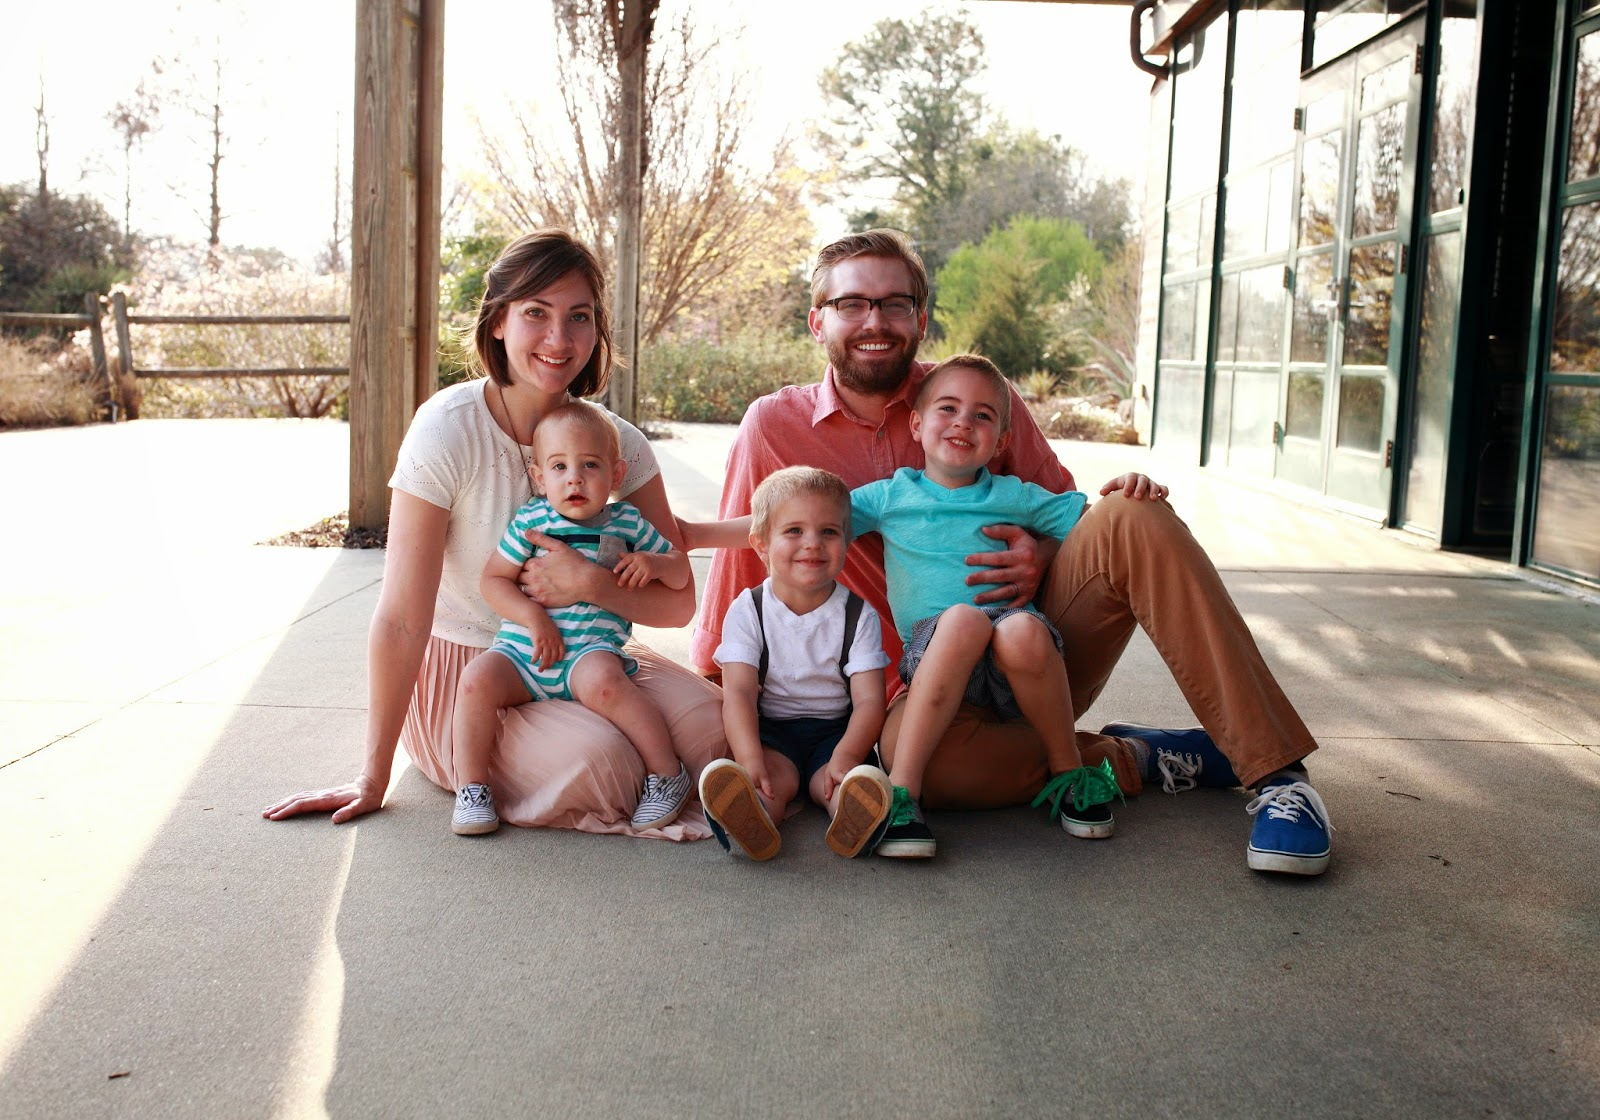 leah-watkins-photography-family-picture